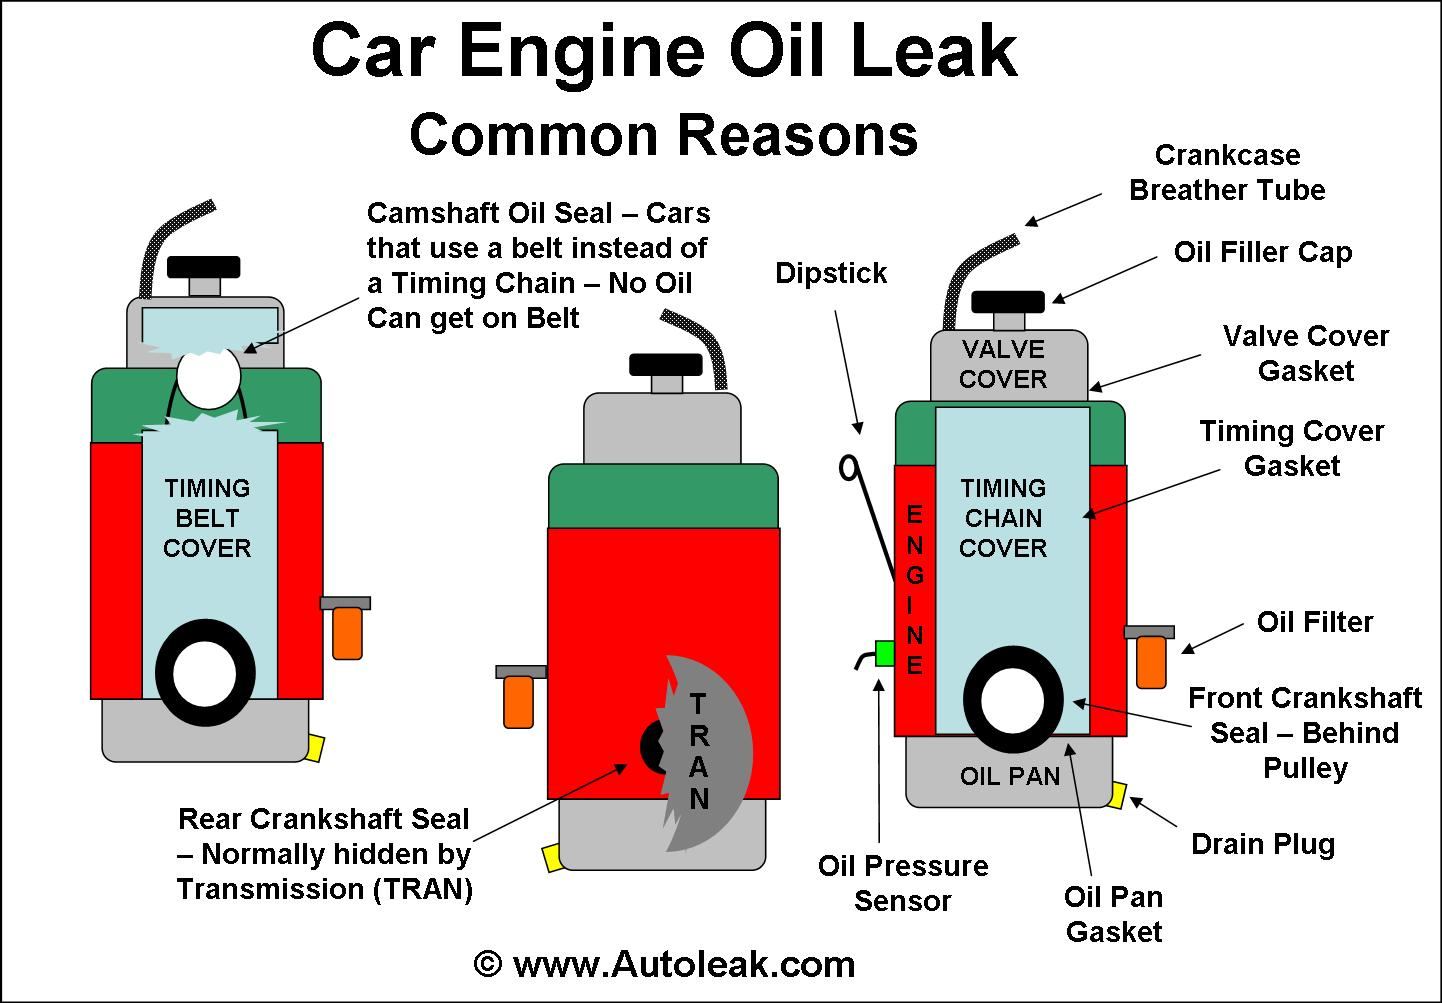 Engine Oil Leaks, Leaking Oil